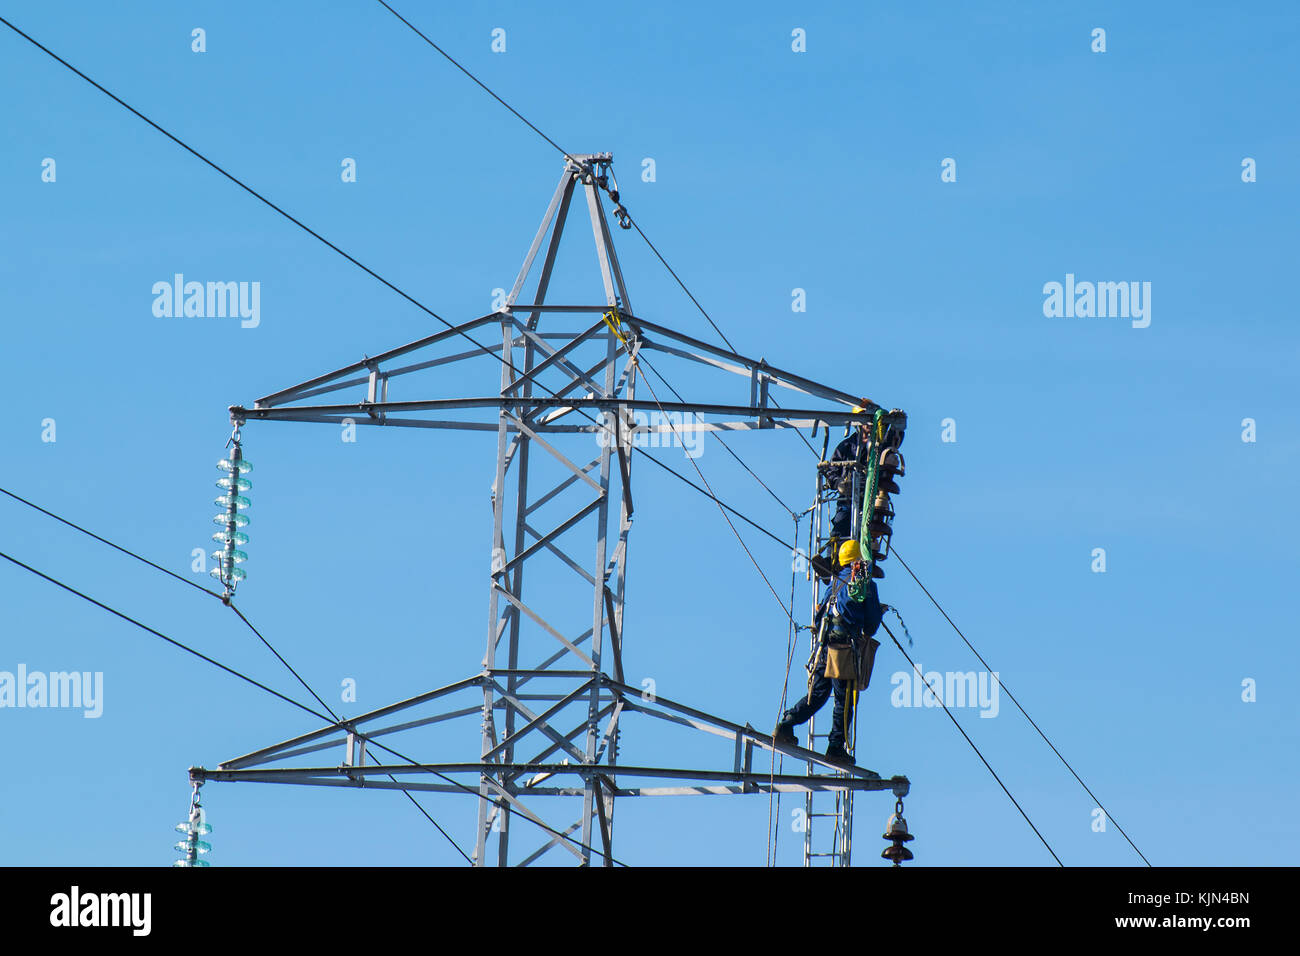 Construction workers fixing above ground electricity wires - Stock Image